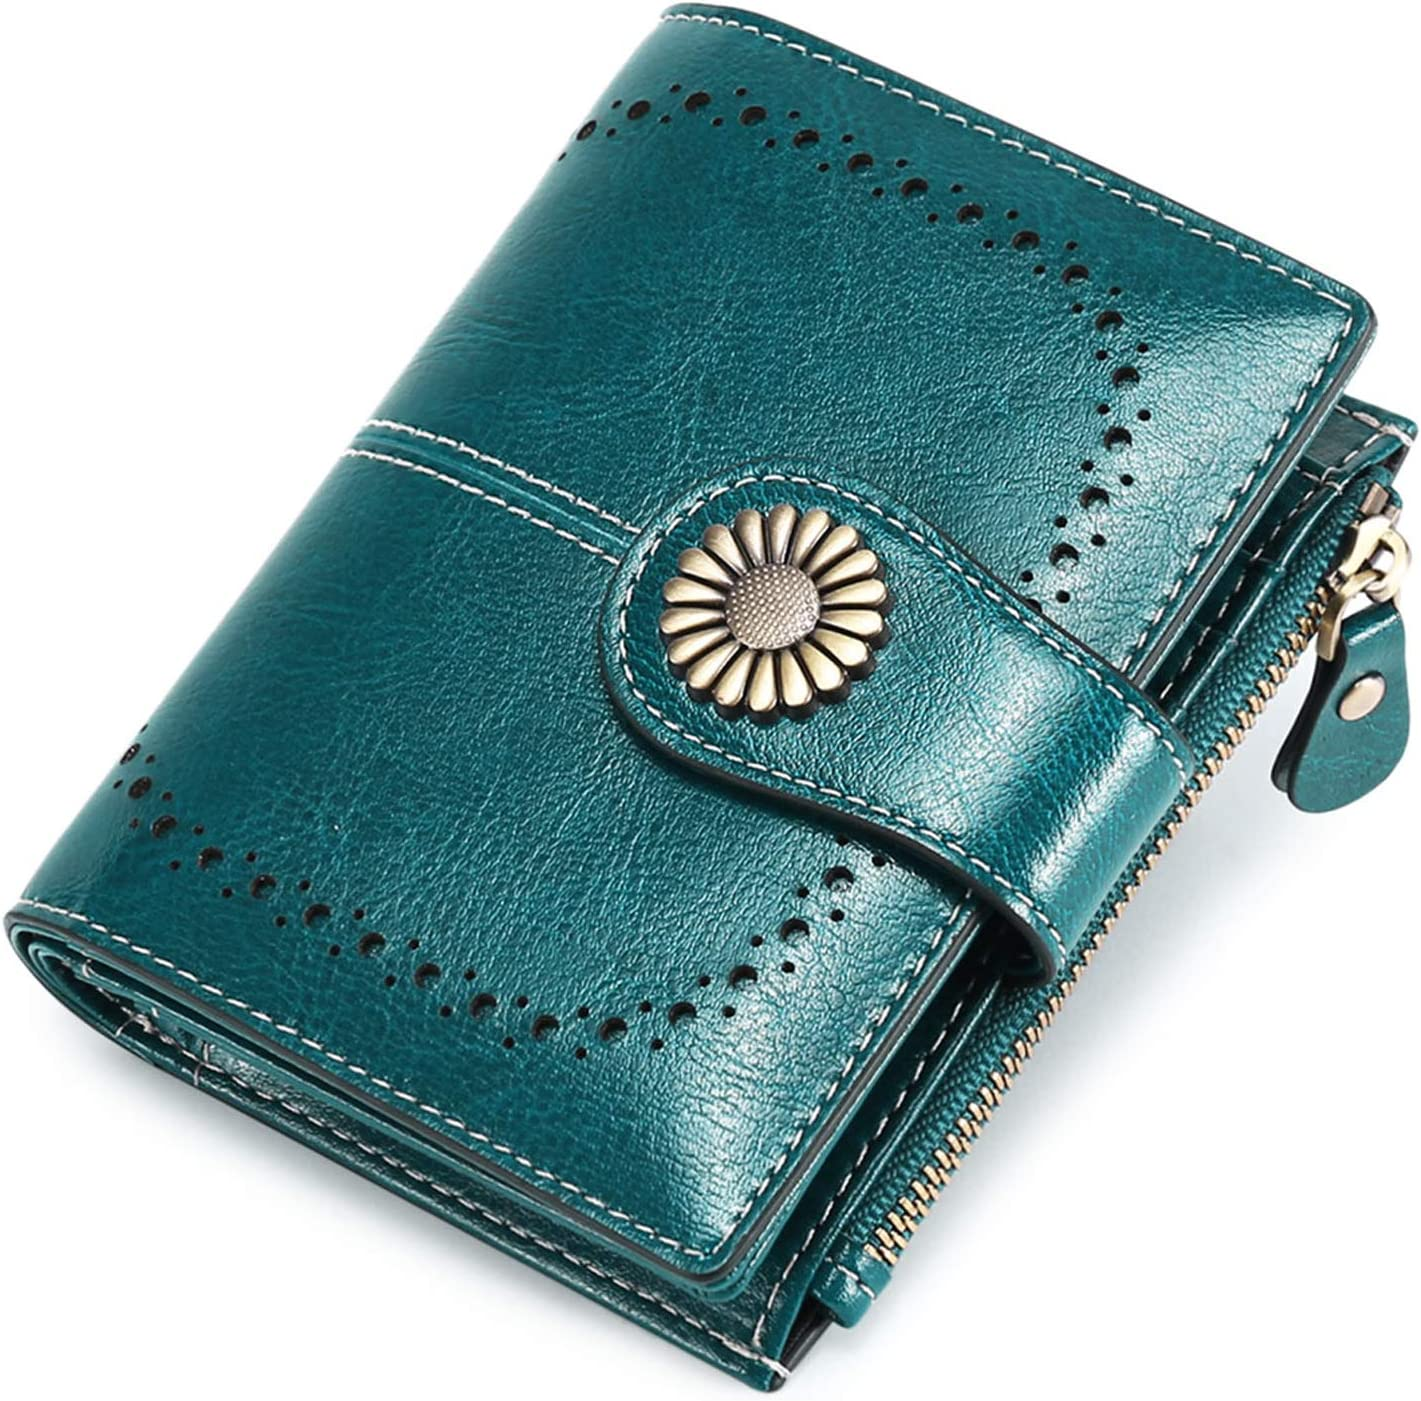 BAIGIO Ladies Leather Purse RFID Blocking Womens Small Wallet with Zip Coin Compartment S 2 Photo ID 10 Credit Card Slots Black